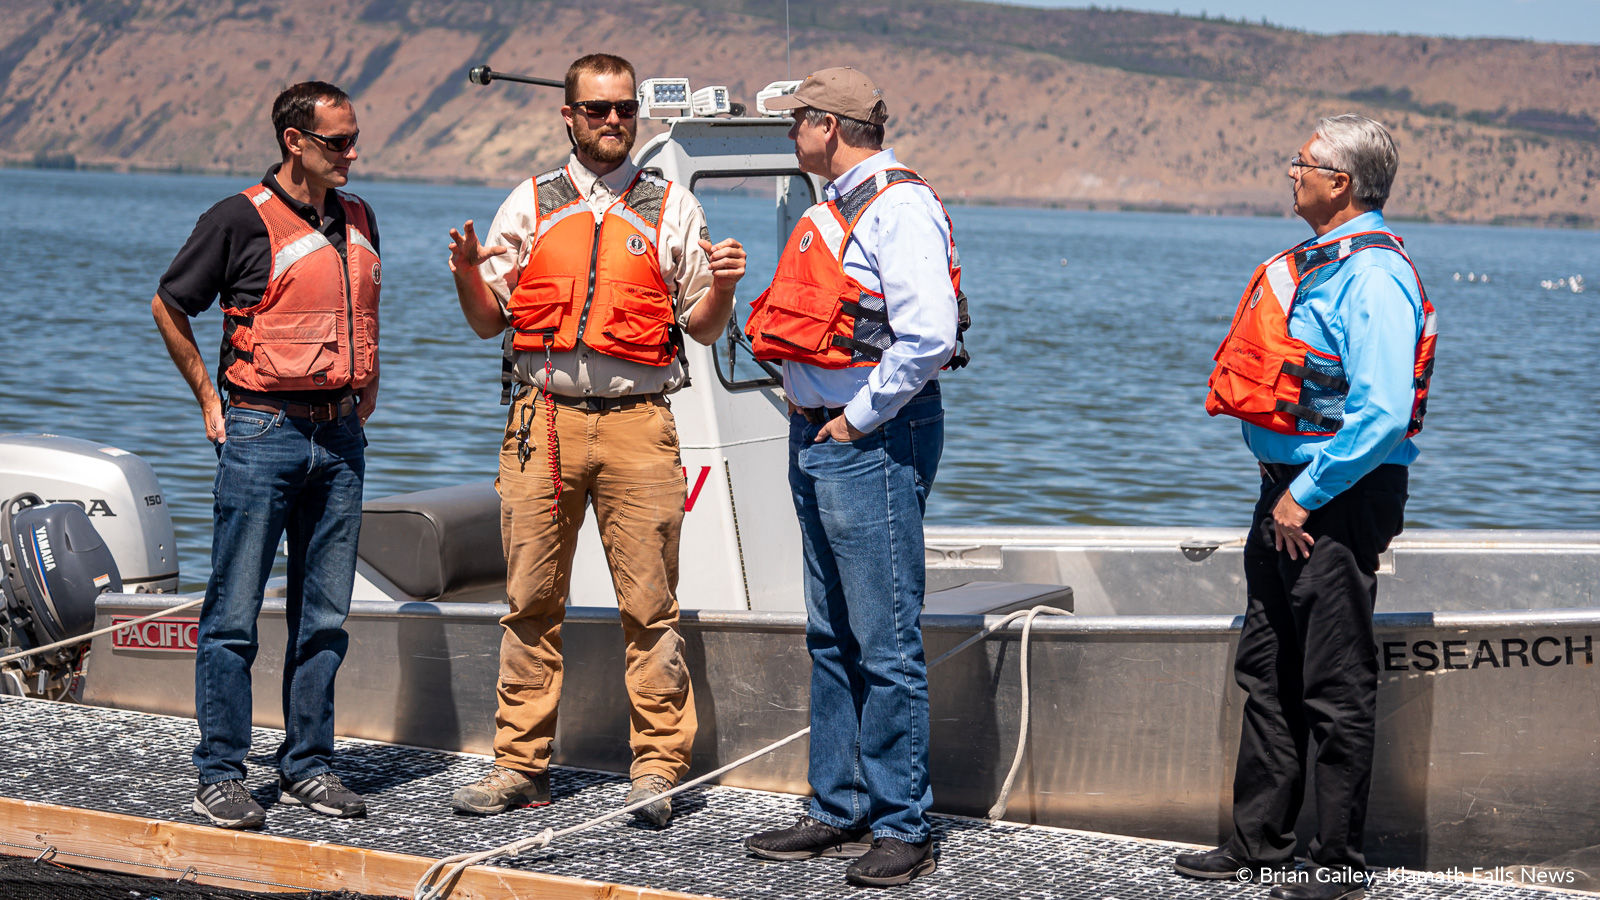 US Senator Jeff Merkley tours the USFWS net pens on Upper Klamath Lake. August 12, 2019 (Image: Brian Gailey / Klamath Falls News)